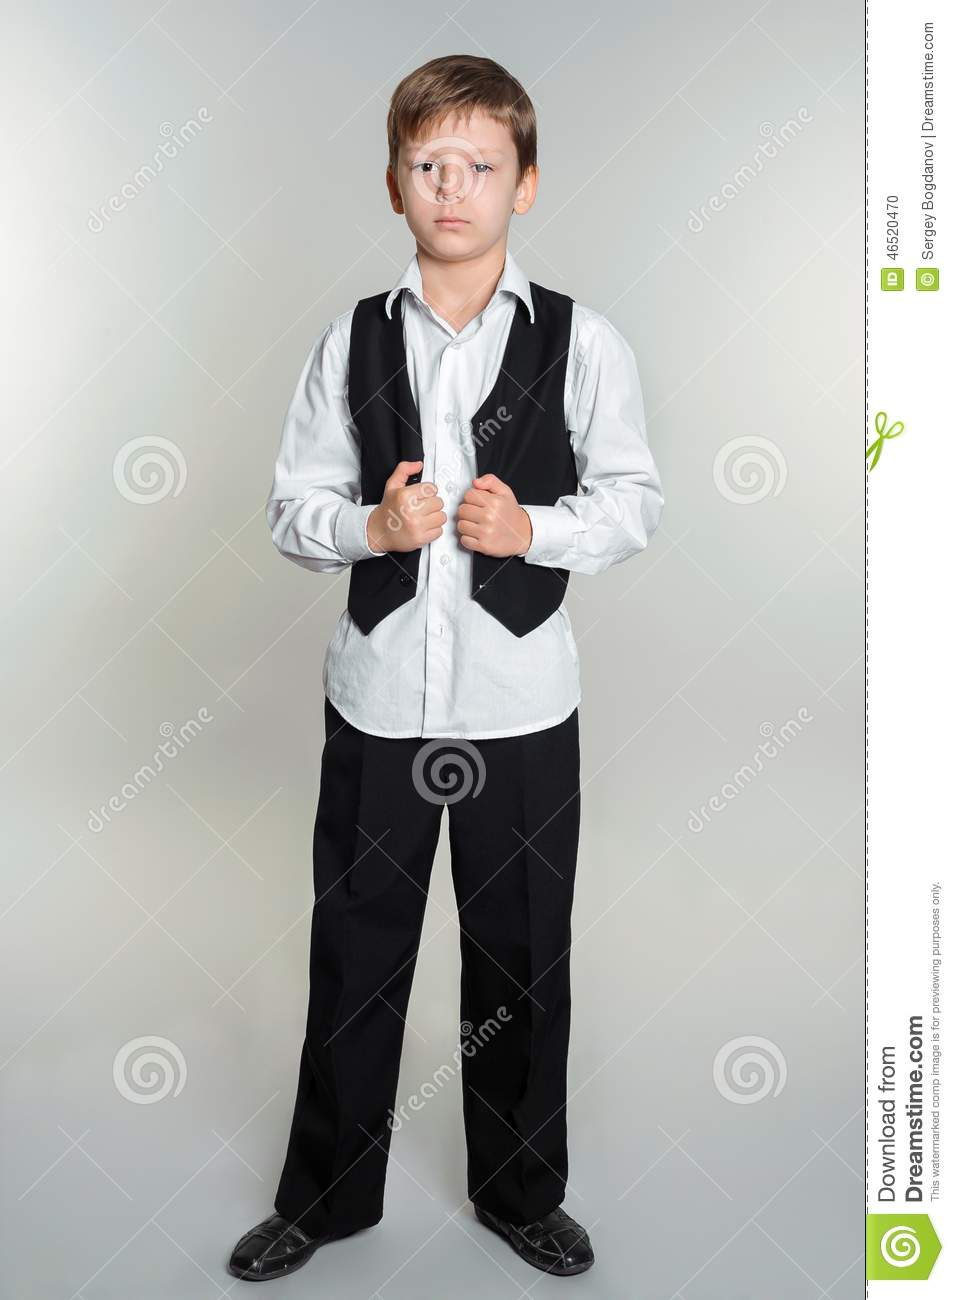 Full length portrait of boy in school uniform.